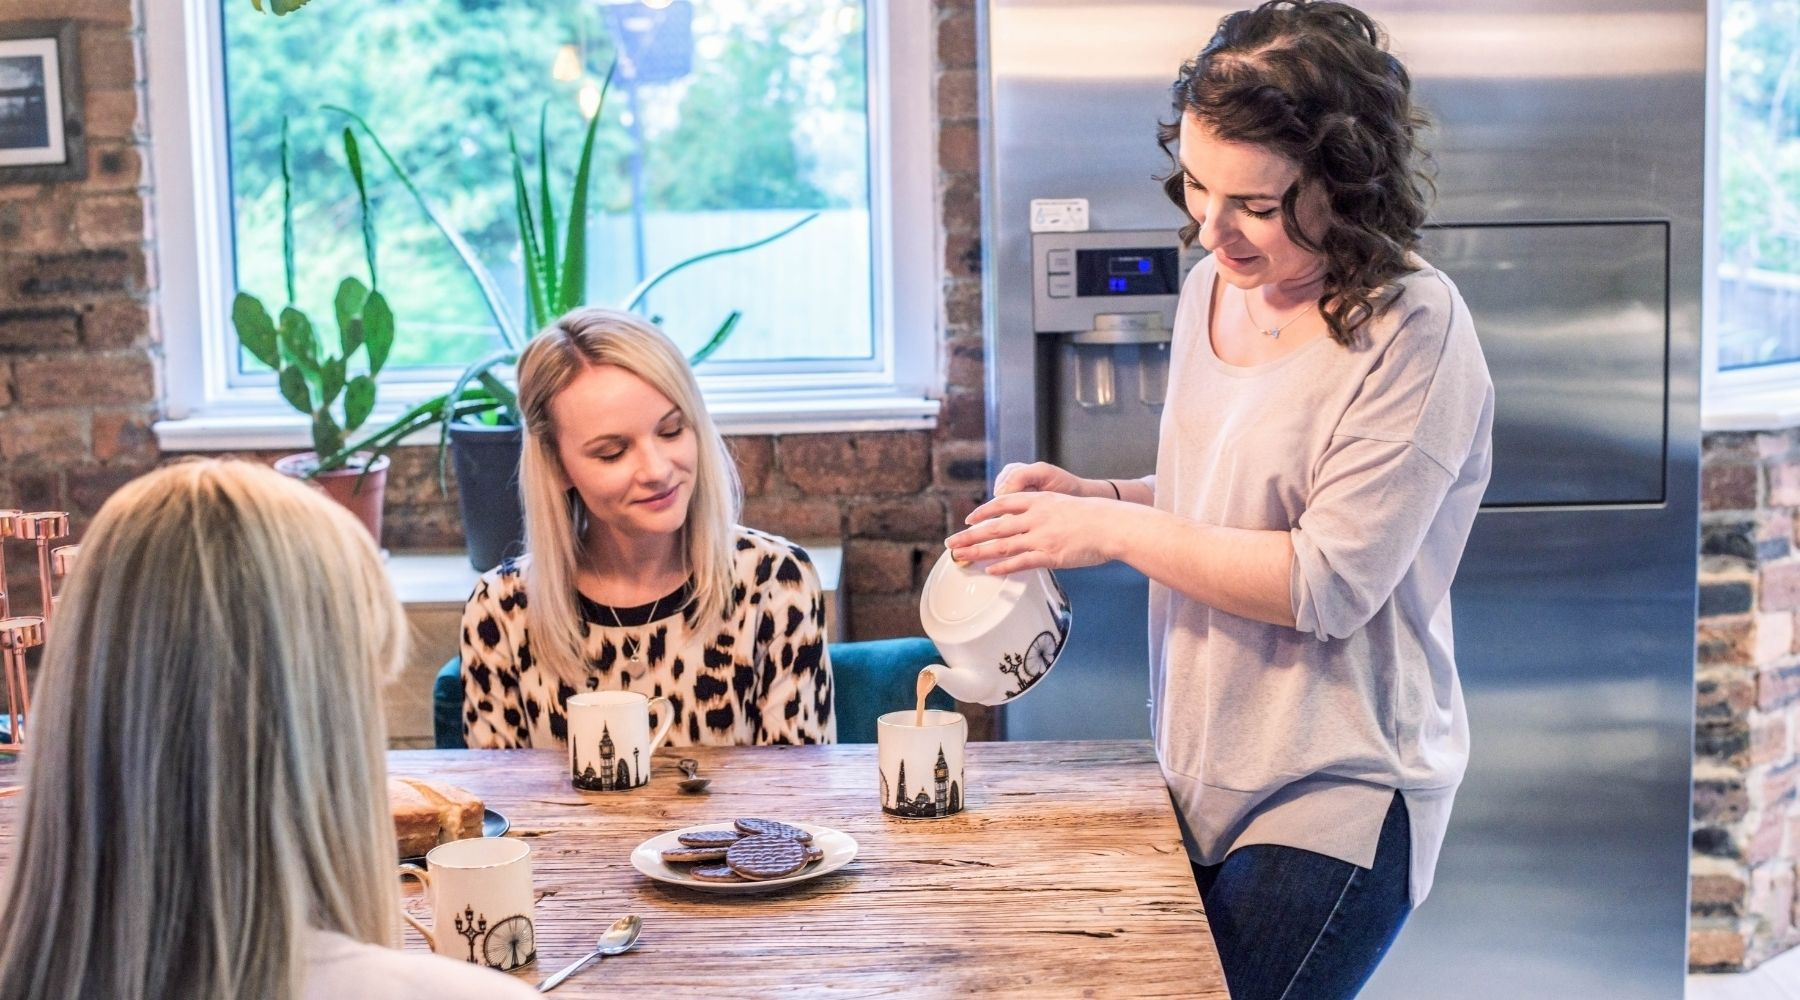 Brown haired lady pours tea from a london landmark teapot into a london landmark mug. Two of her friends are sat at the table. There is a plate of chocolate biscuits on the table.